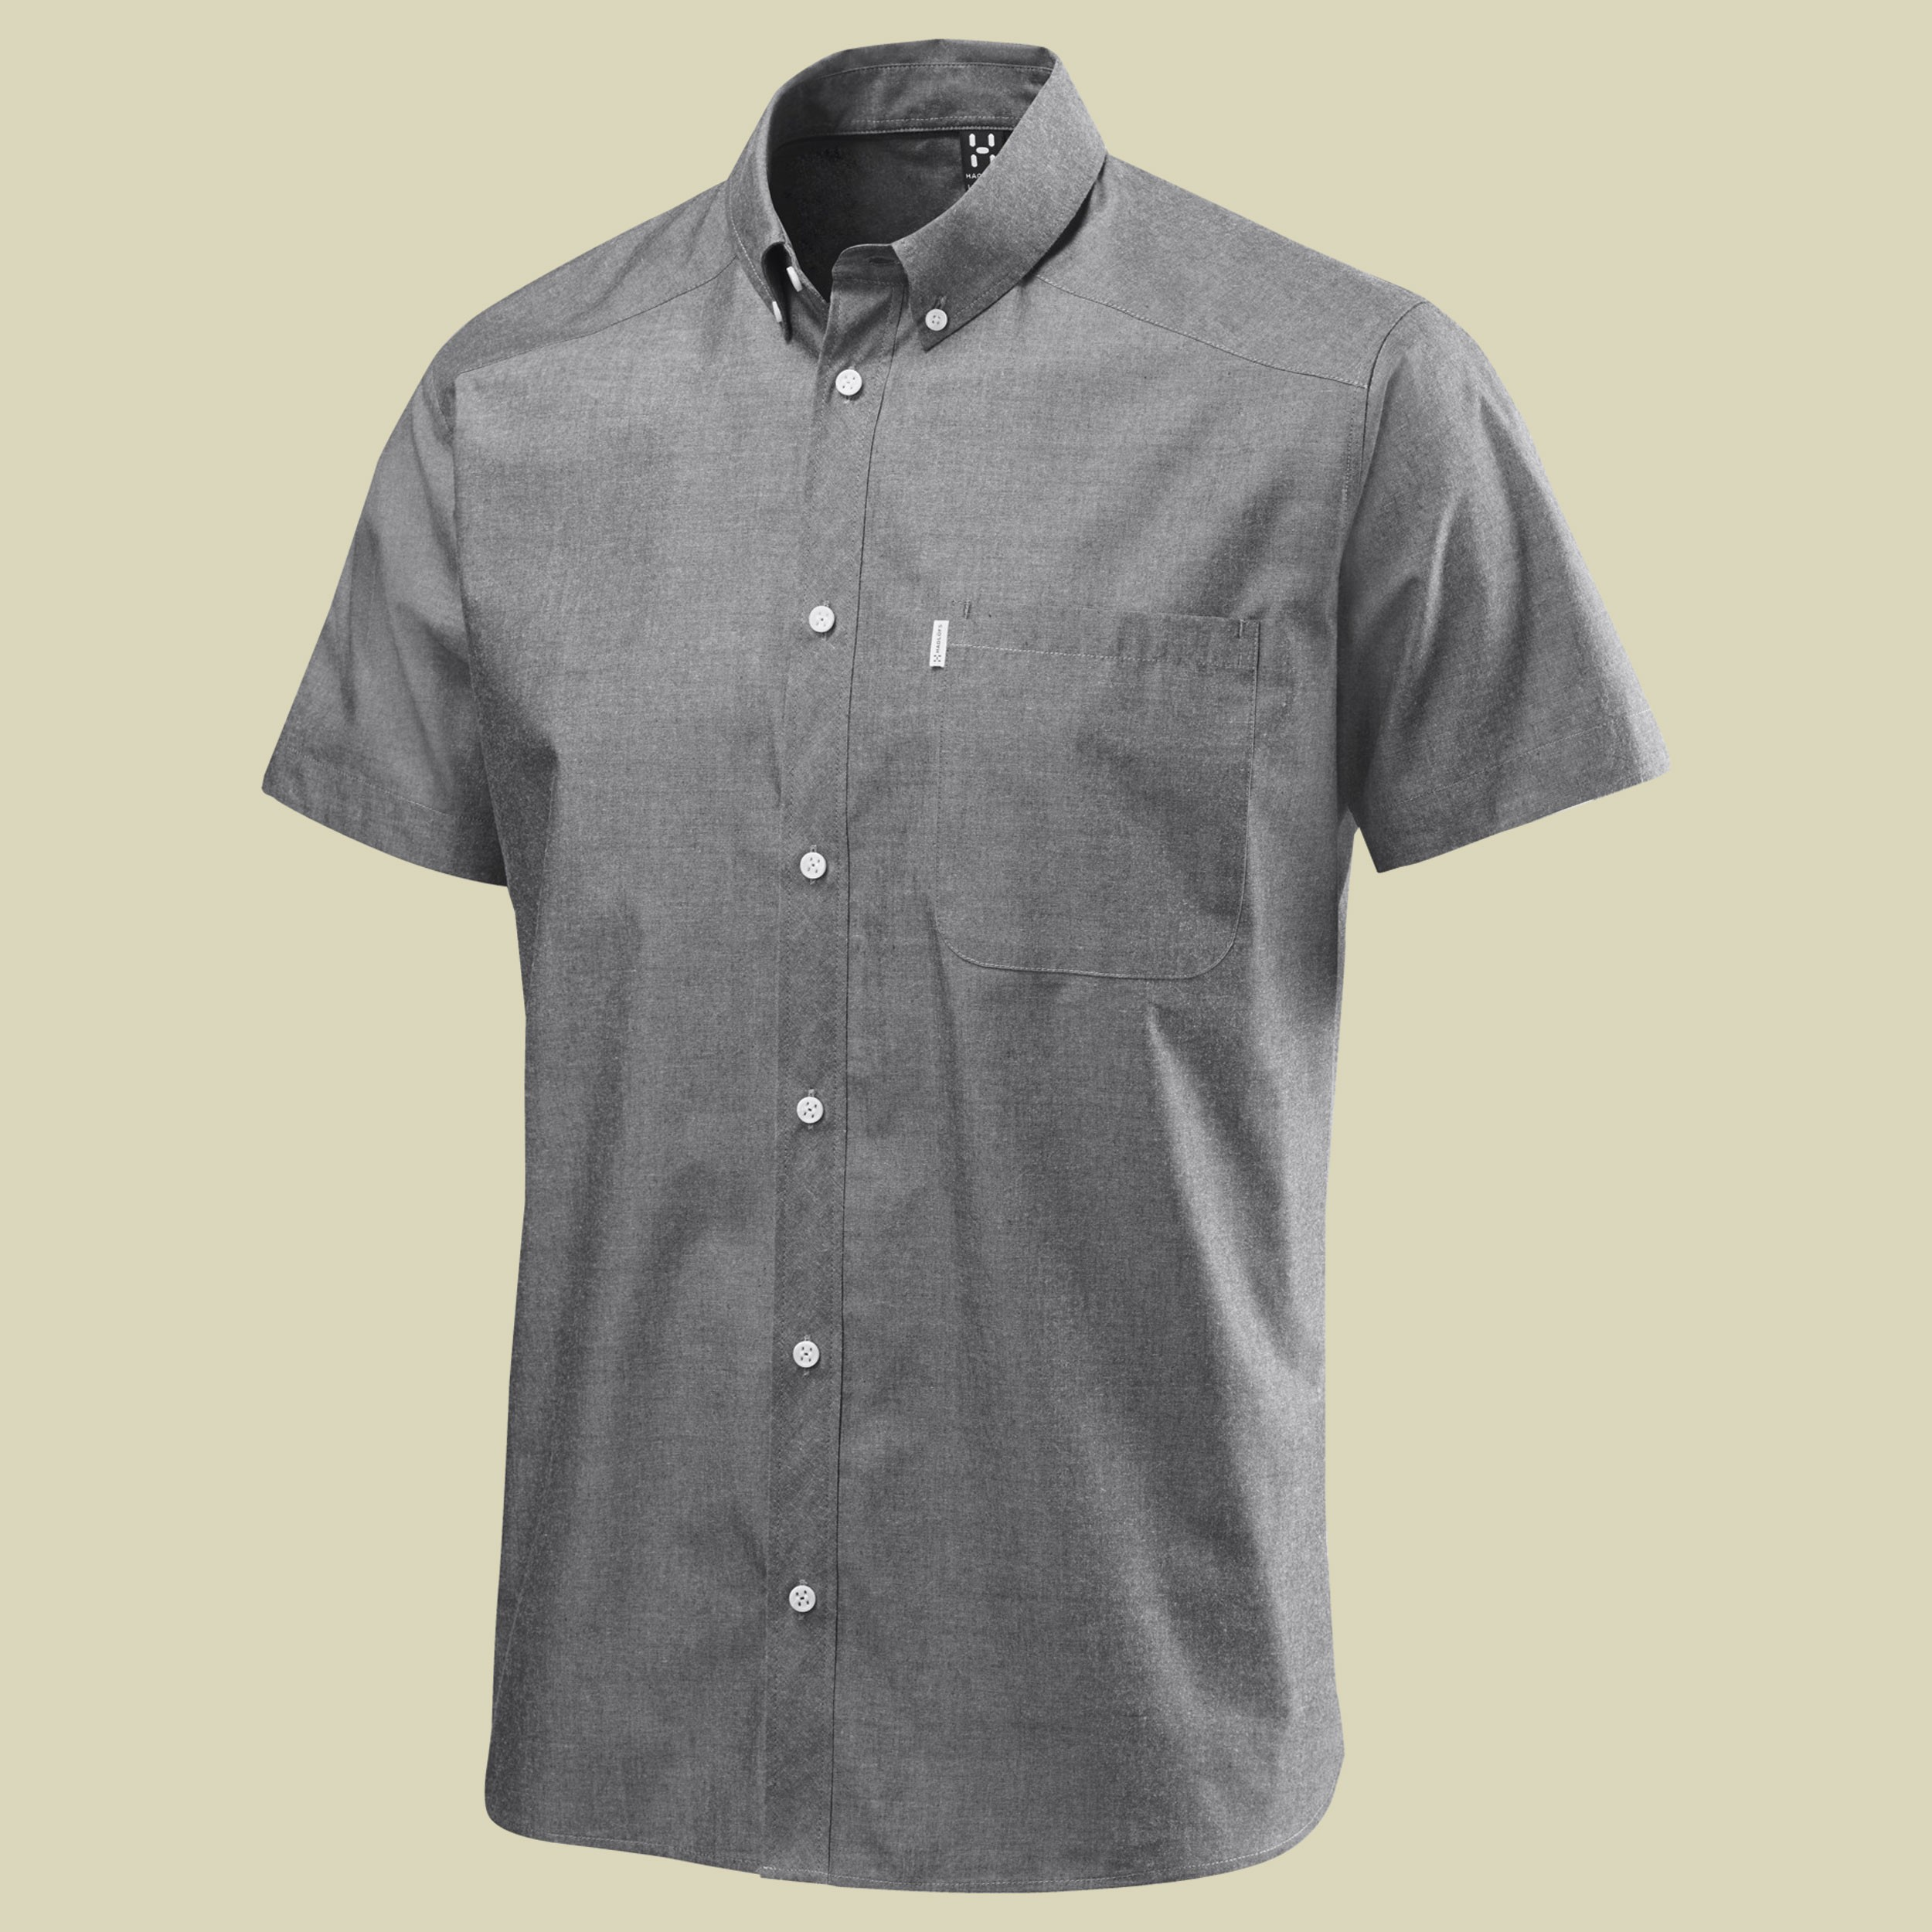 Zuma SS Shirt Solid Men